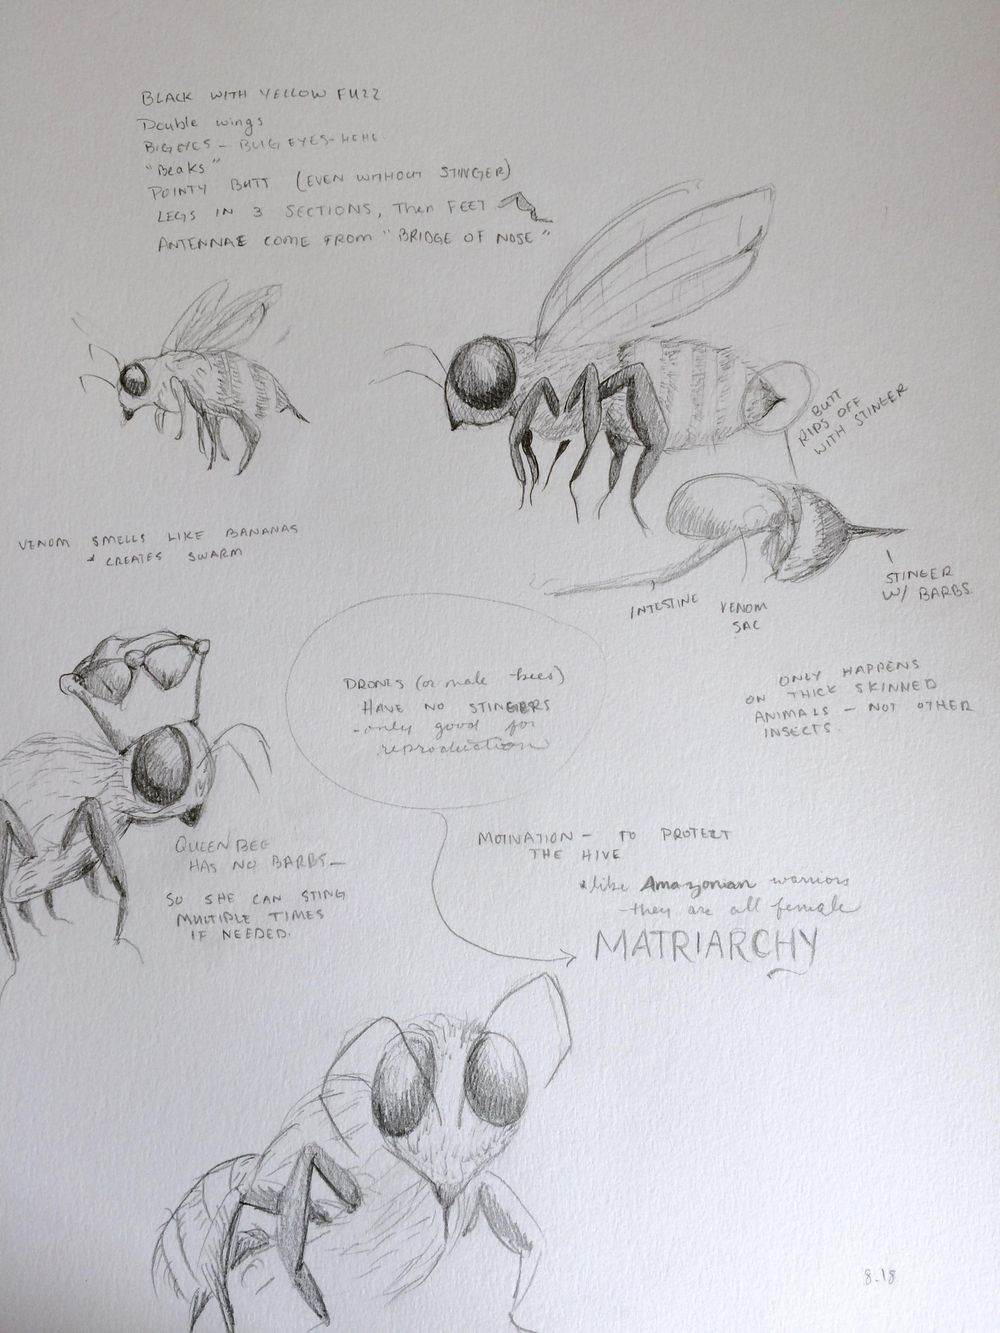 Honey bees only sting once - image 8 - student project